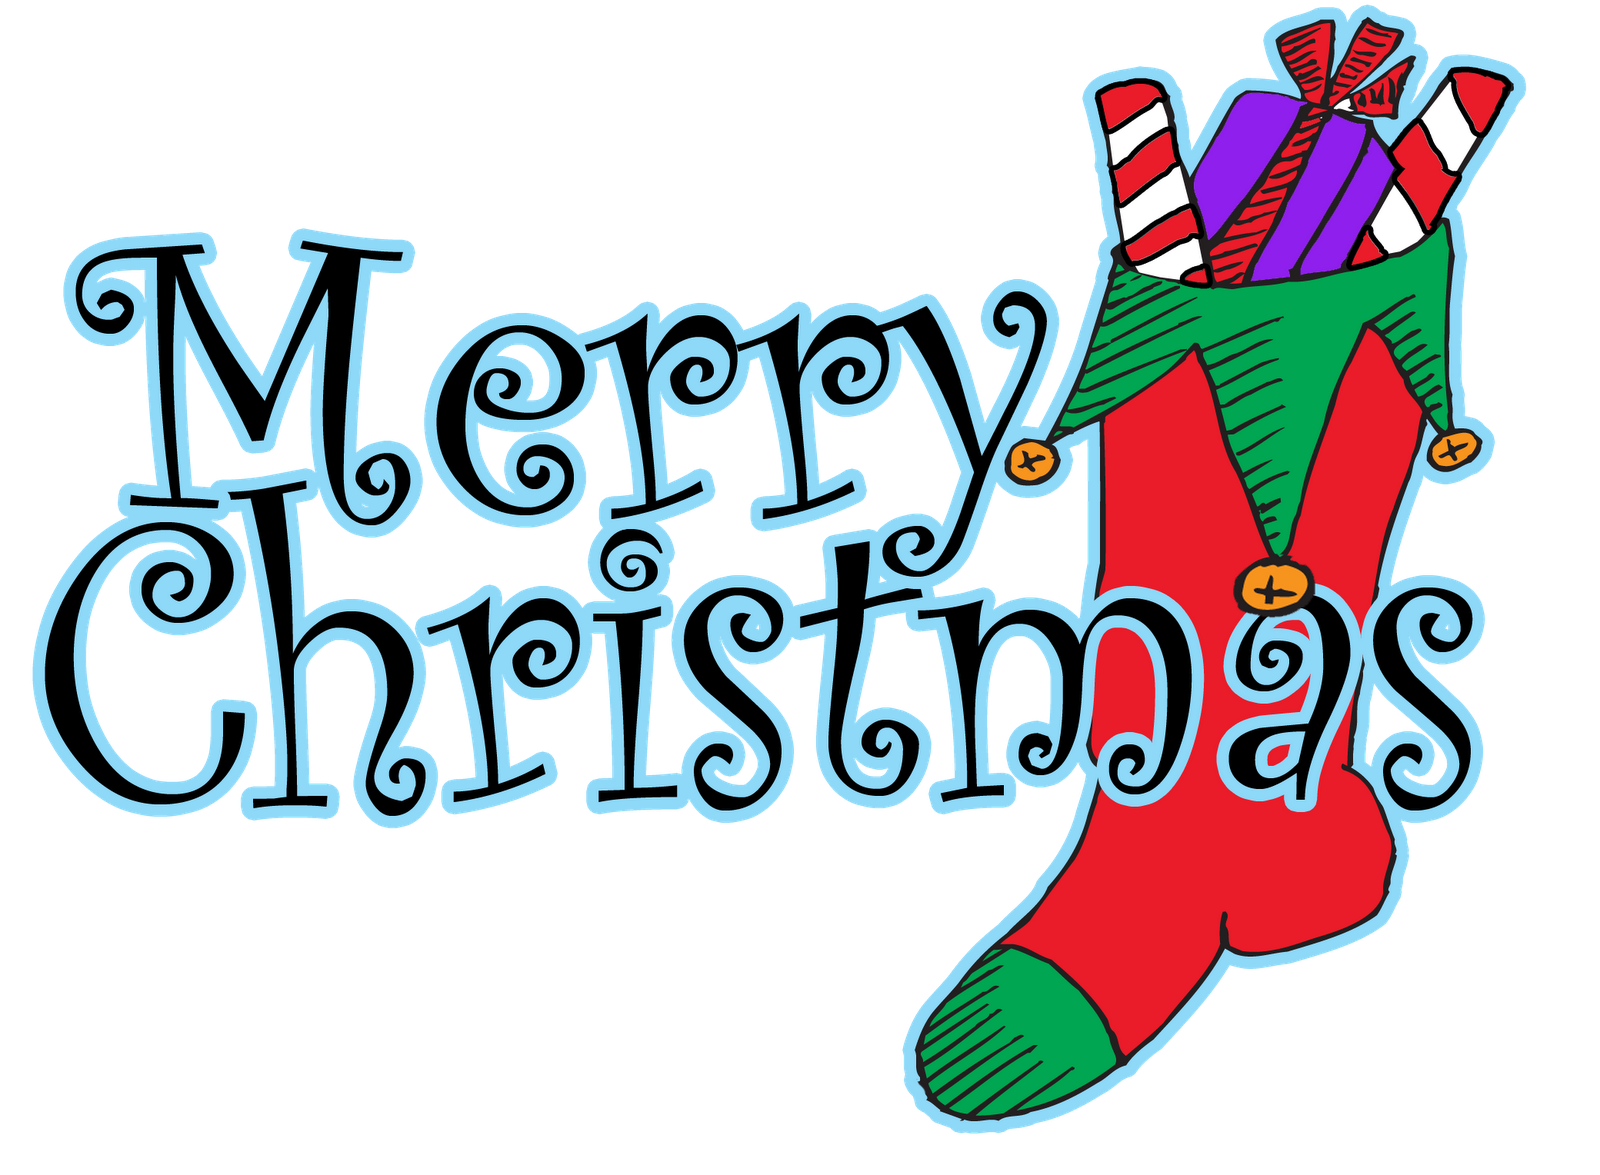 Merry Christmas Clip Art Png in addition to Christmas backgrounds for ...